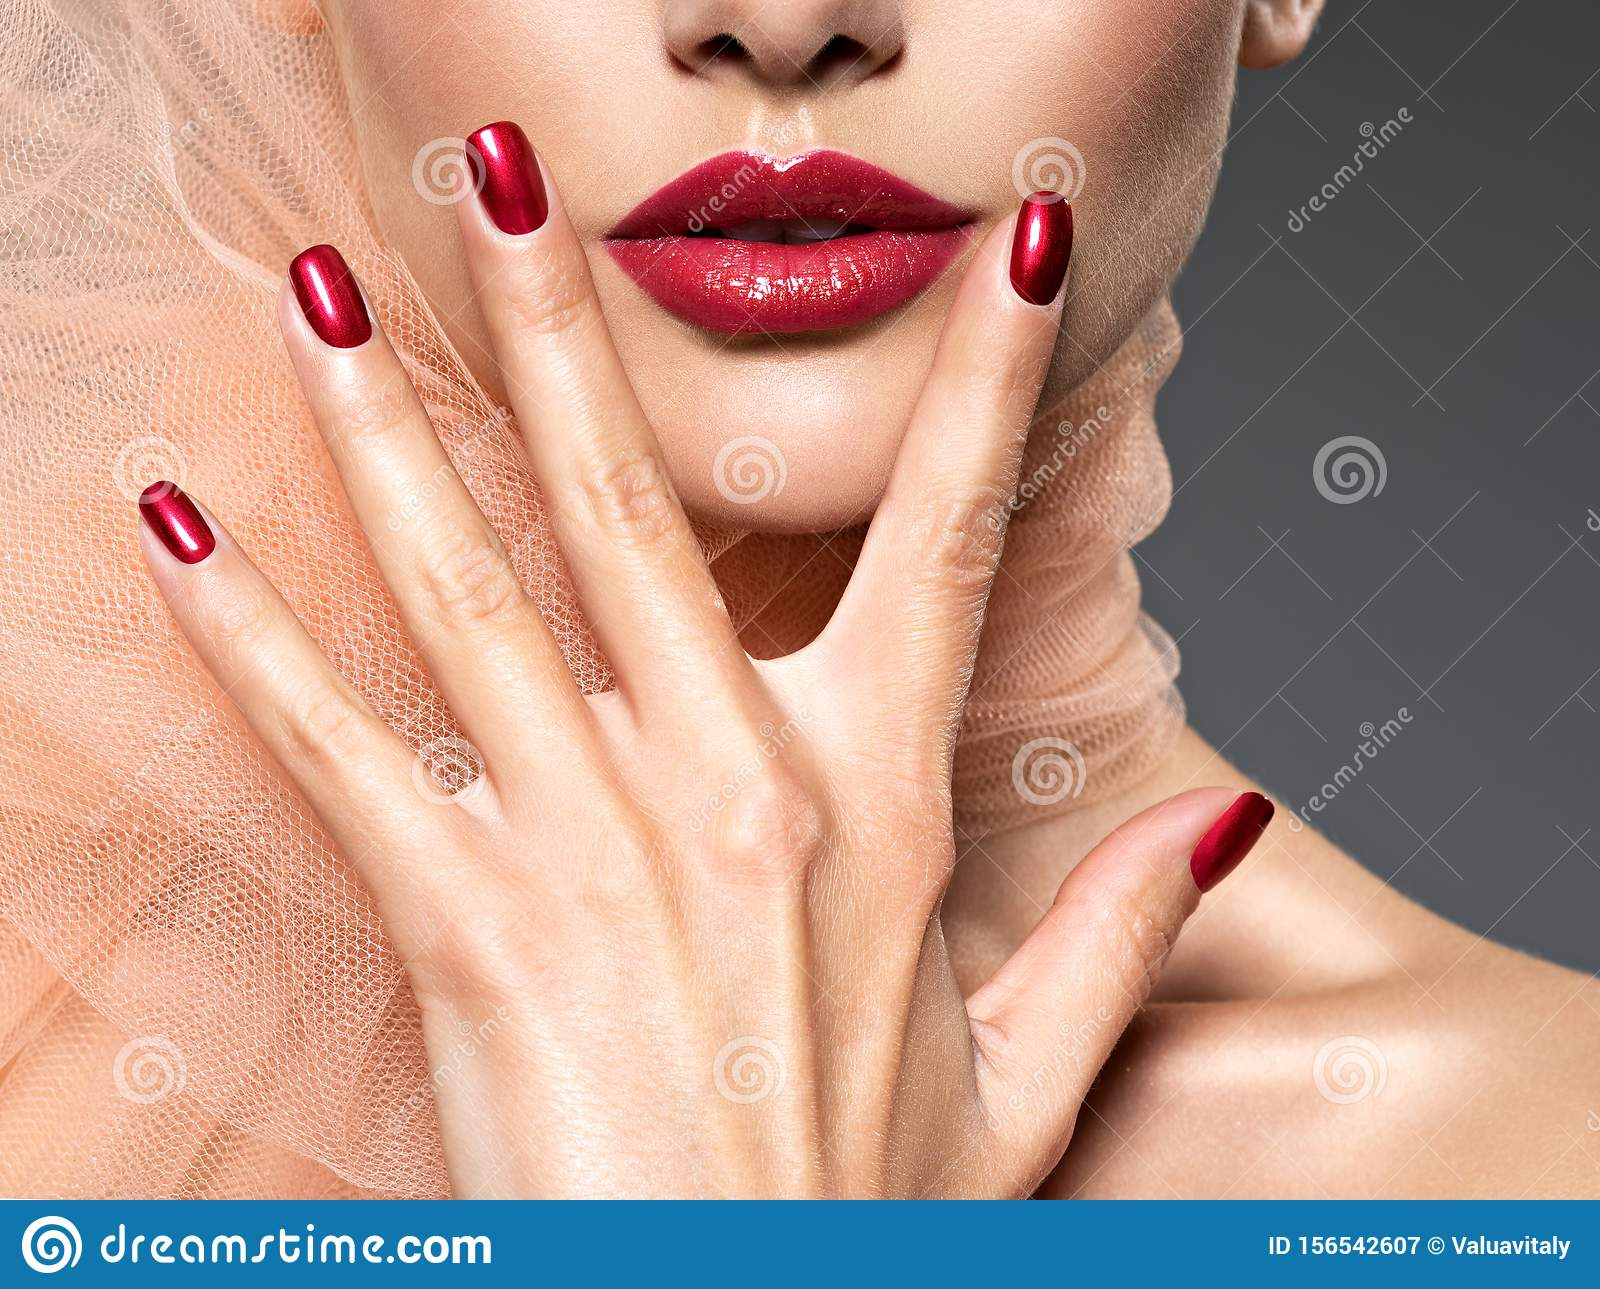 Closeup face of a woman with red nails and lips